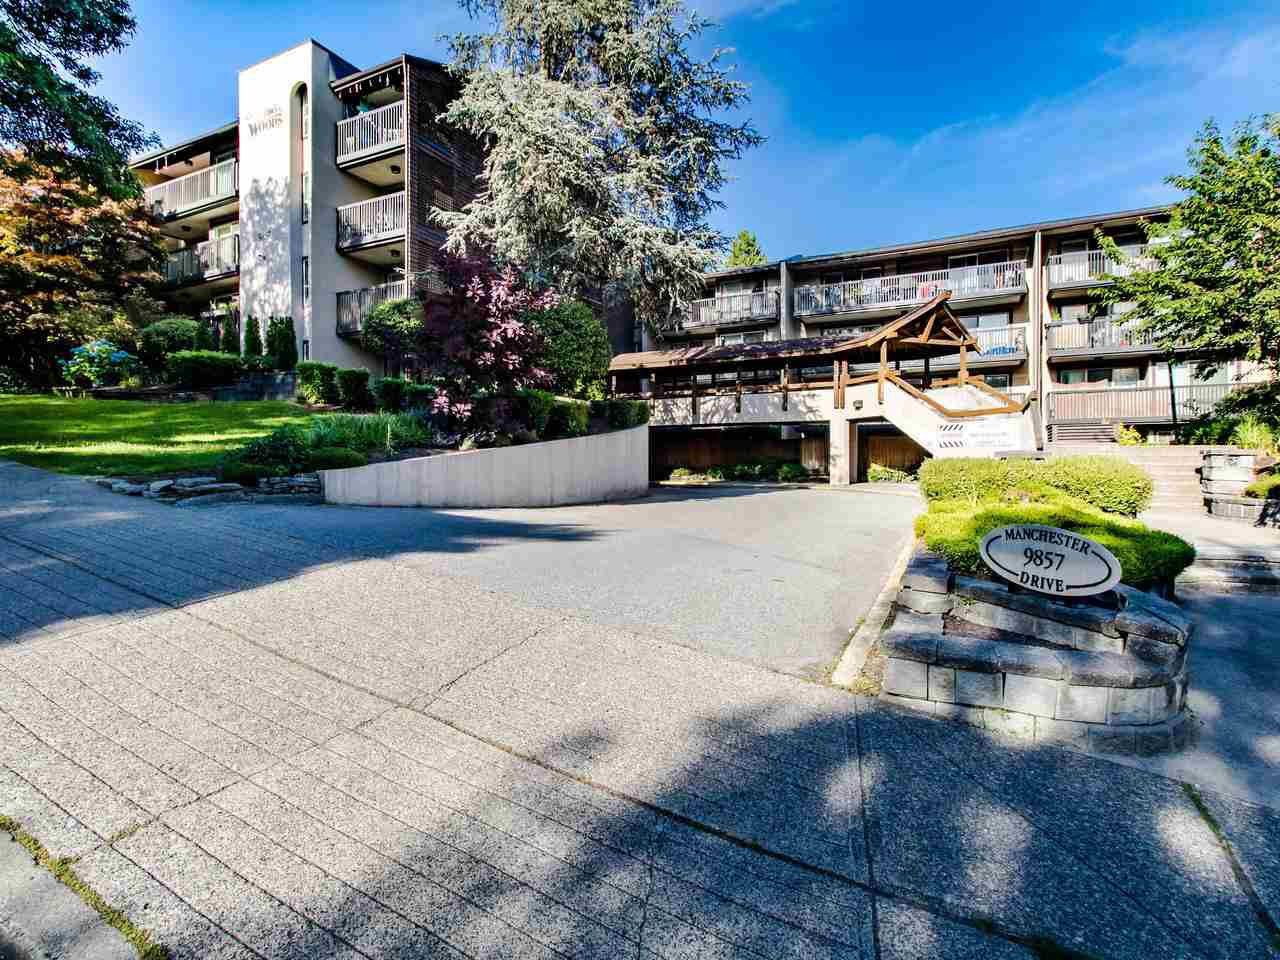 """Main Photo: 415 9857 MANCHESTER Drive in Burnaby: Cariboo Condo for sale in """"Barclay Woods"""" (Burnaby North)  : MLS®# R2469773"""